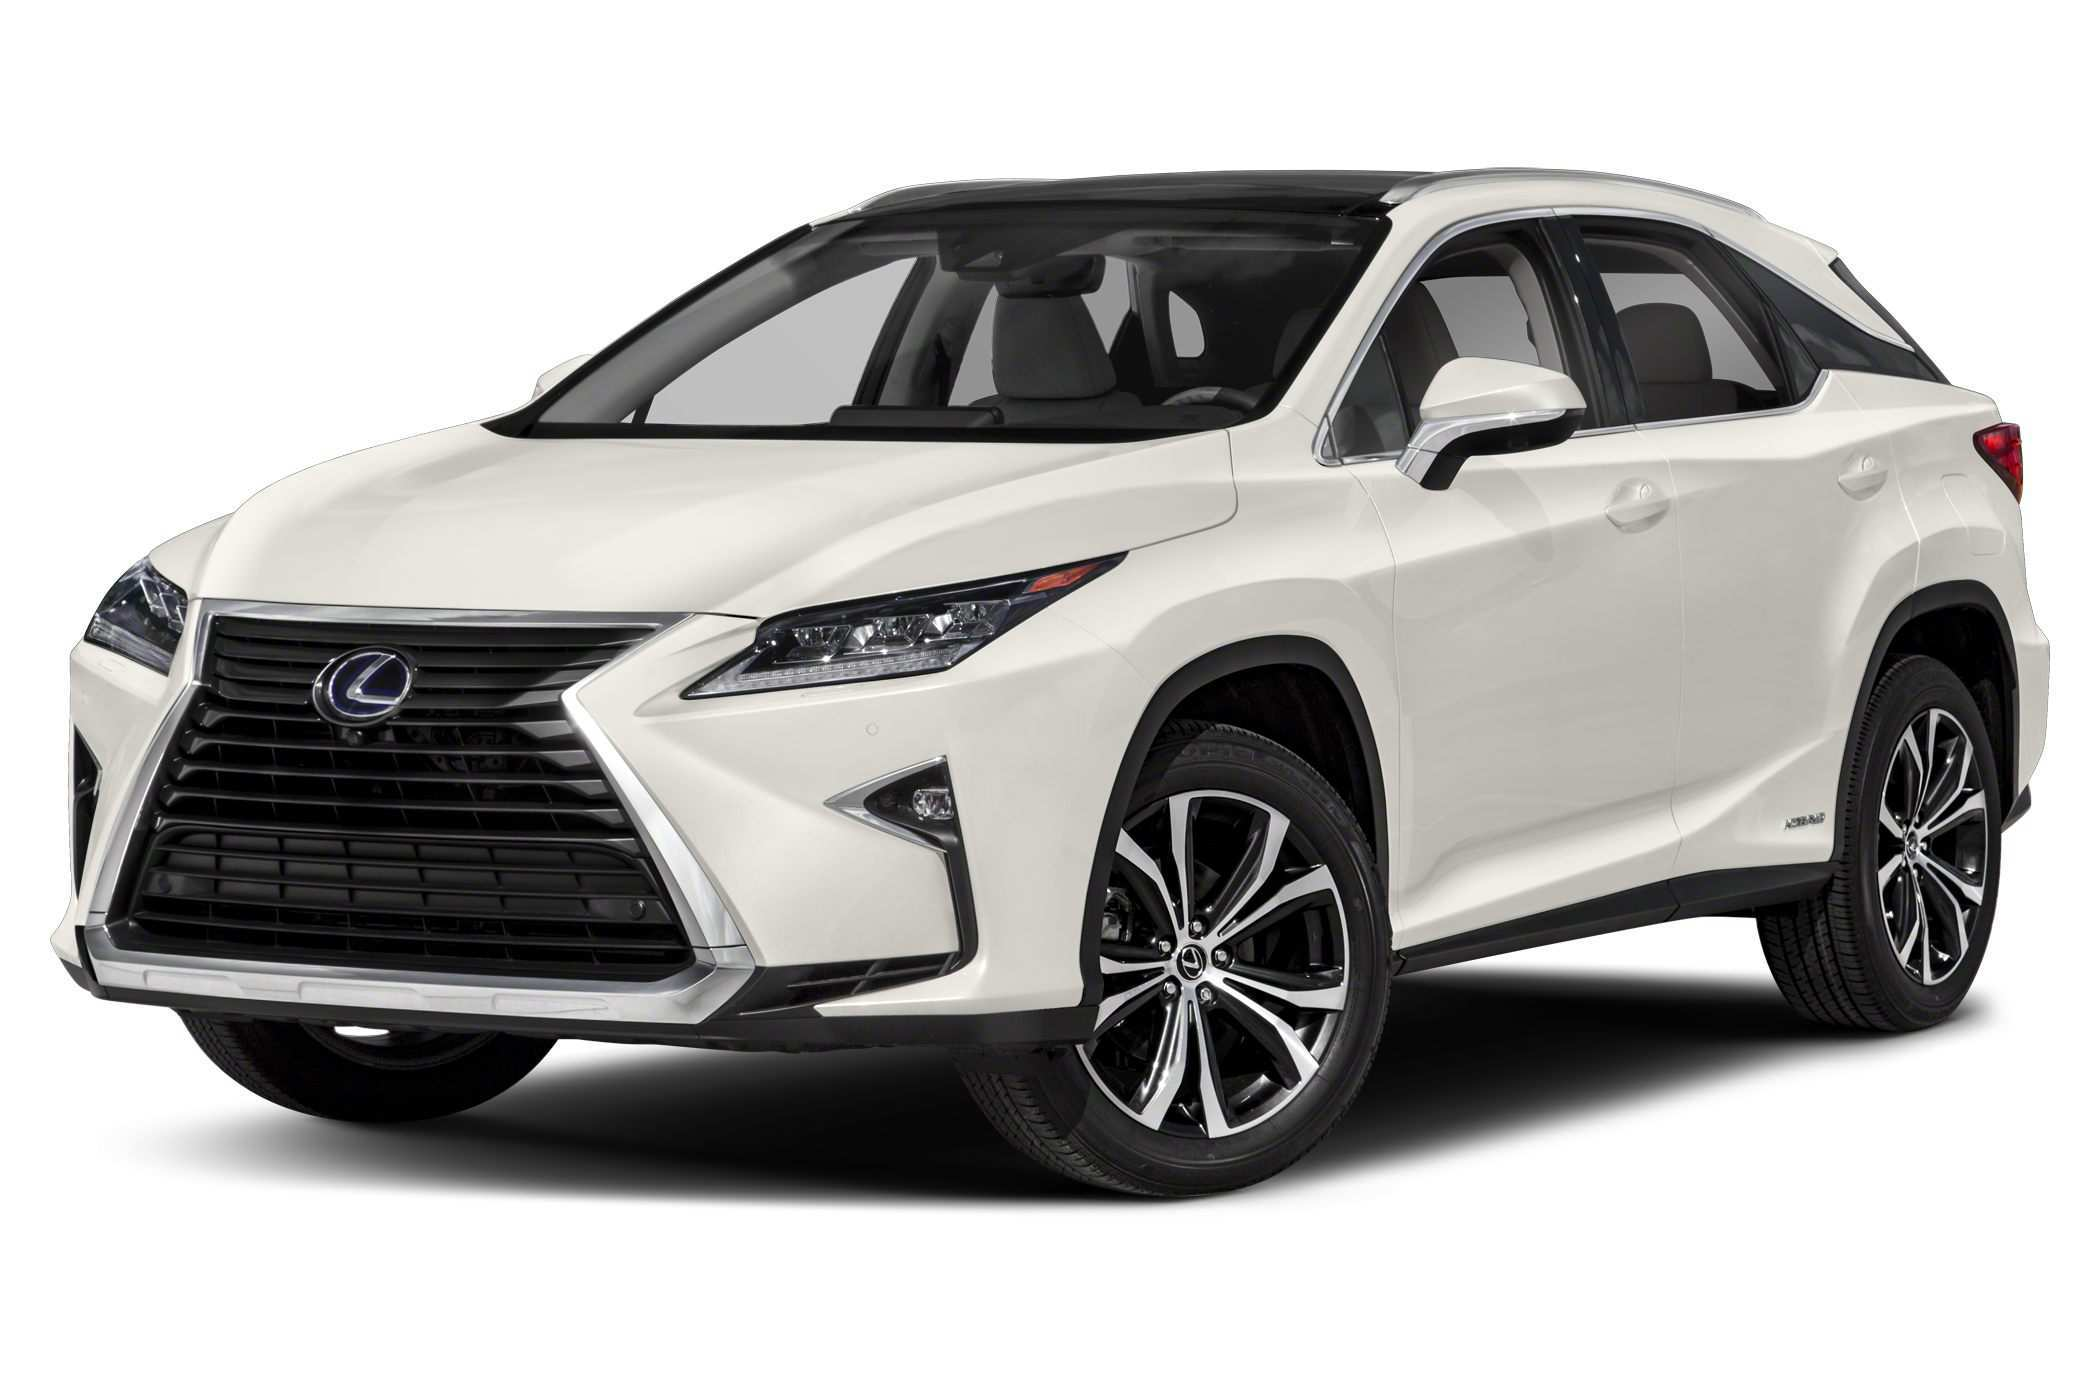 47 A Lexus Rx Facelift 2019 Engine